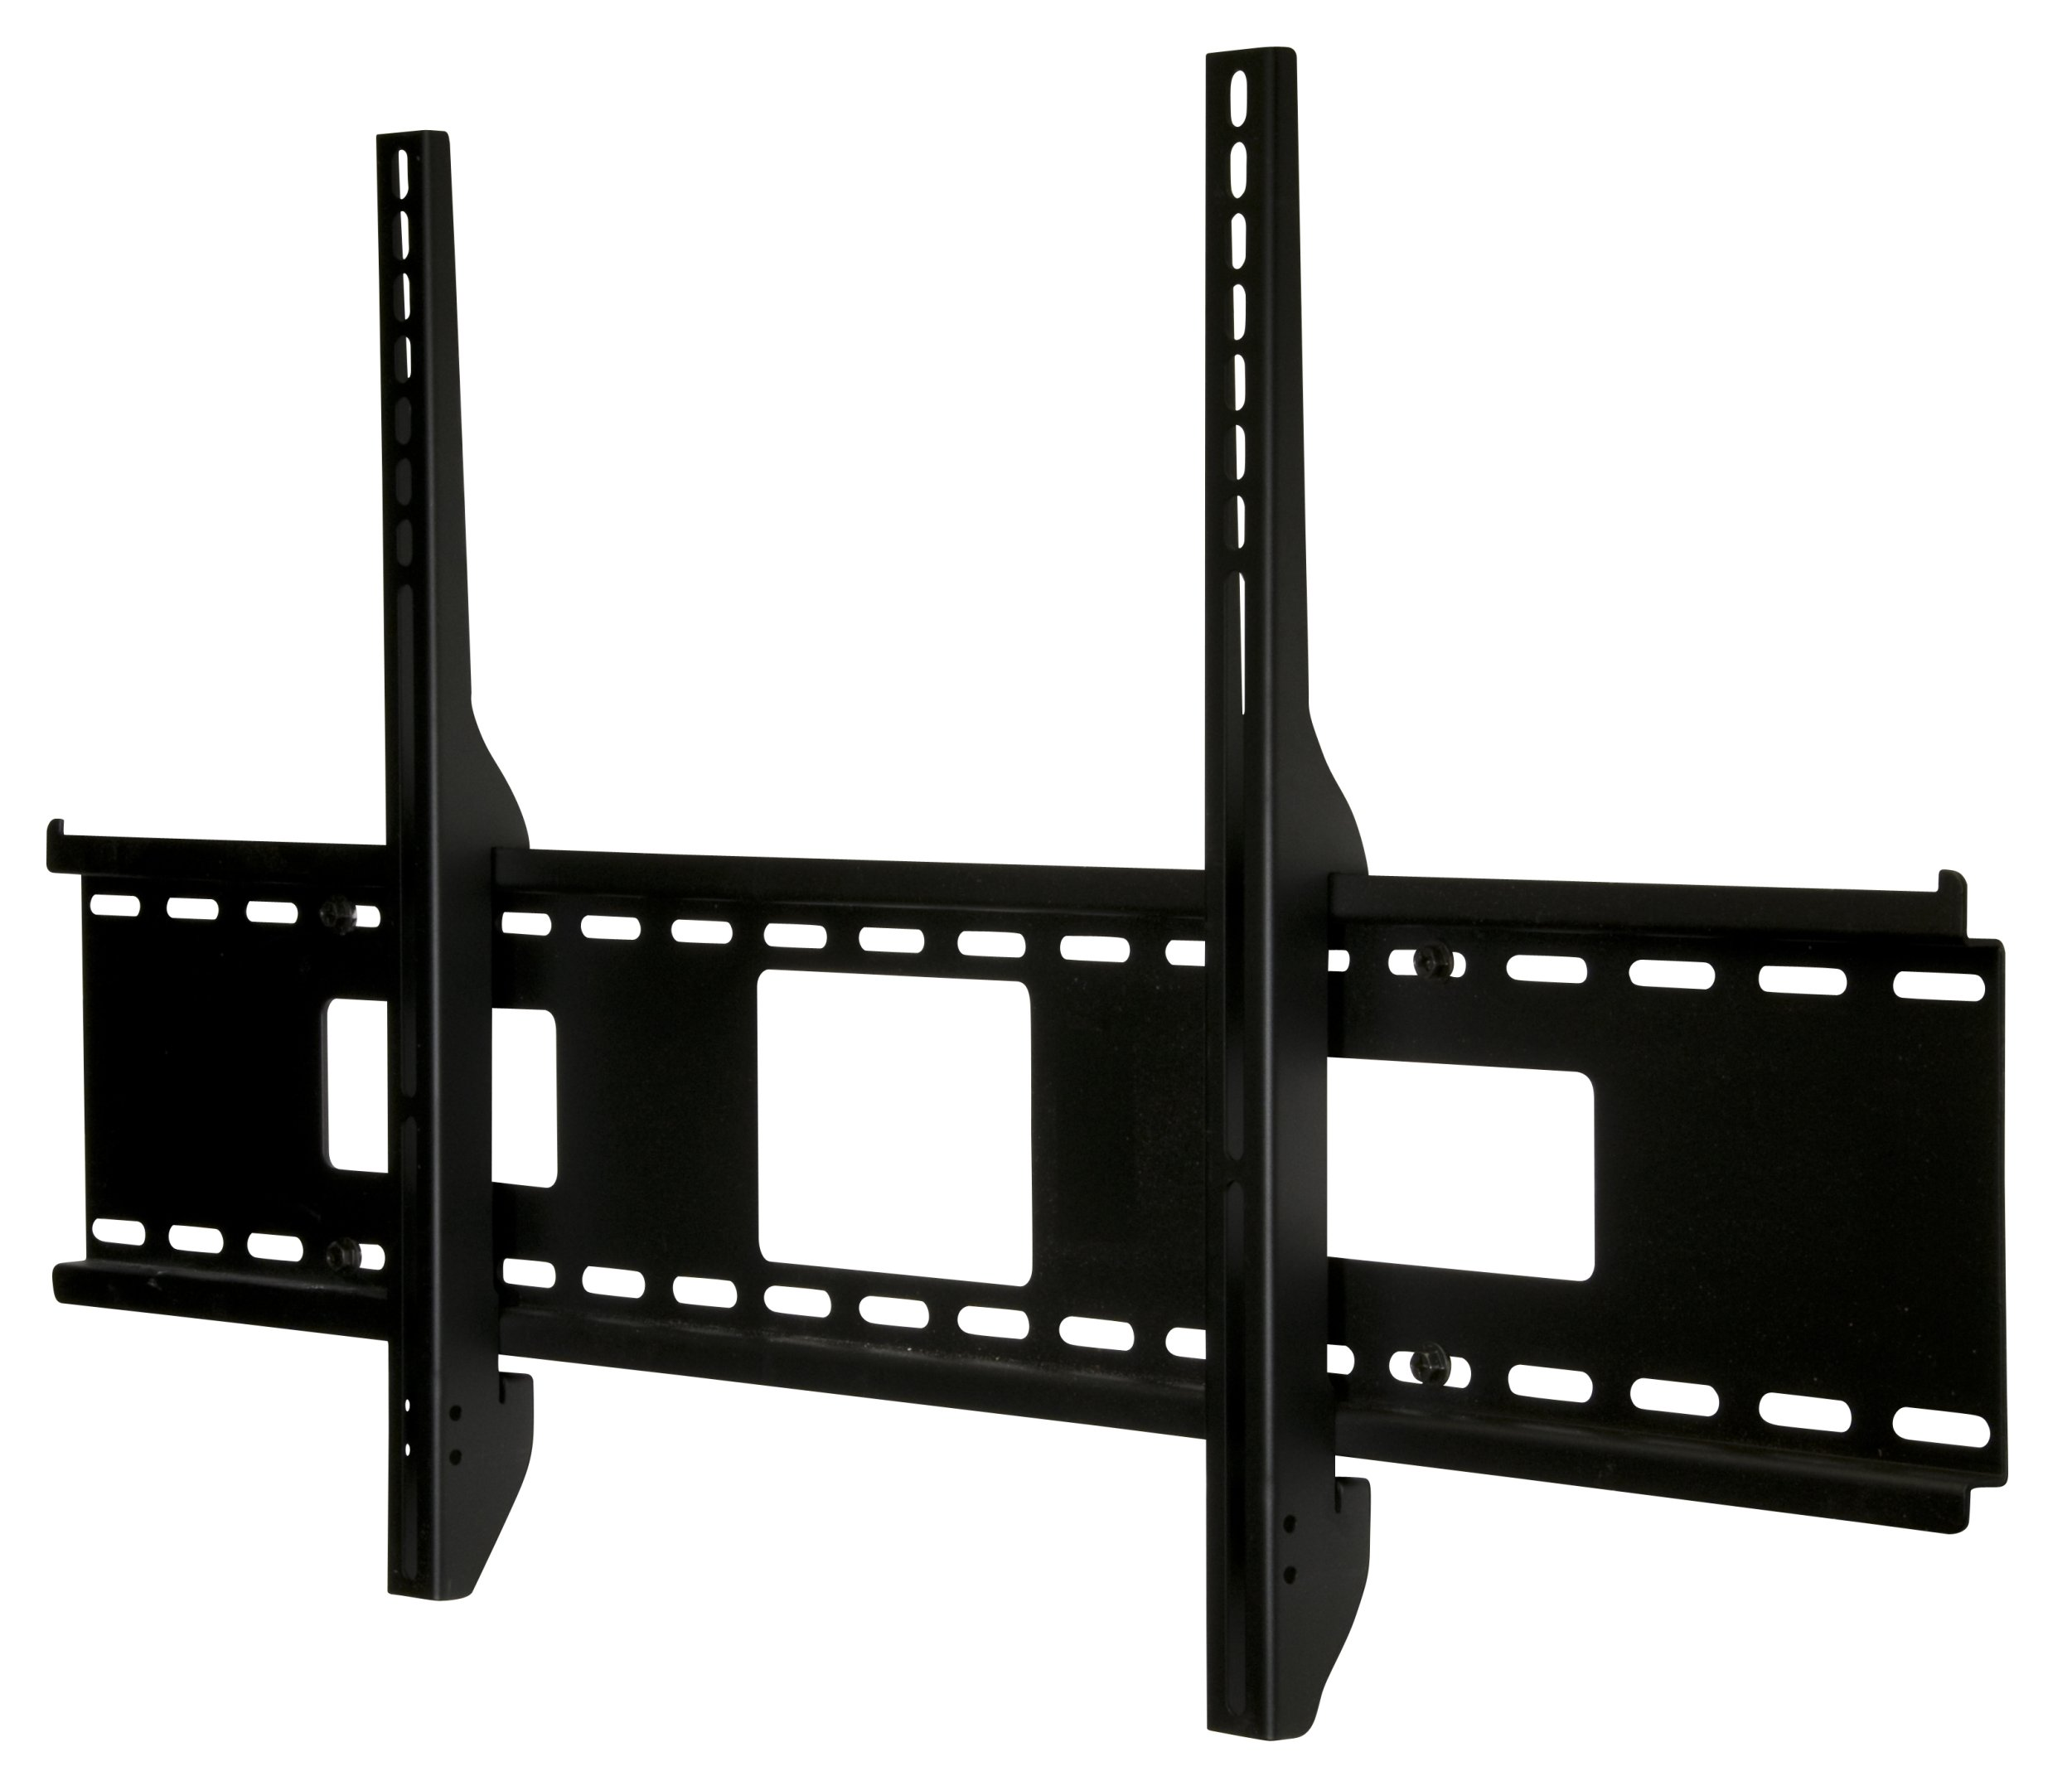 Peerless SF670P Universal Fixed Low-Profile Wall Mount for 46-Inch to 90-Inch Displays (Black/Non-Security)